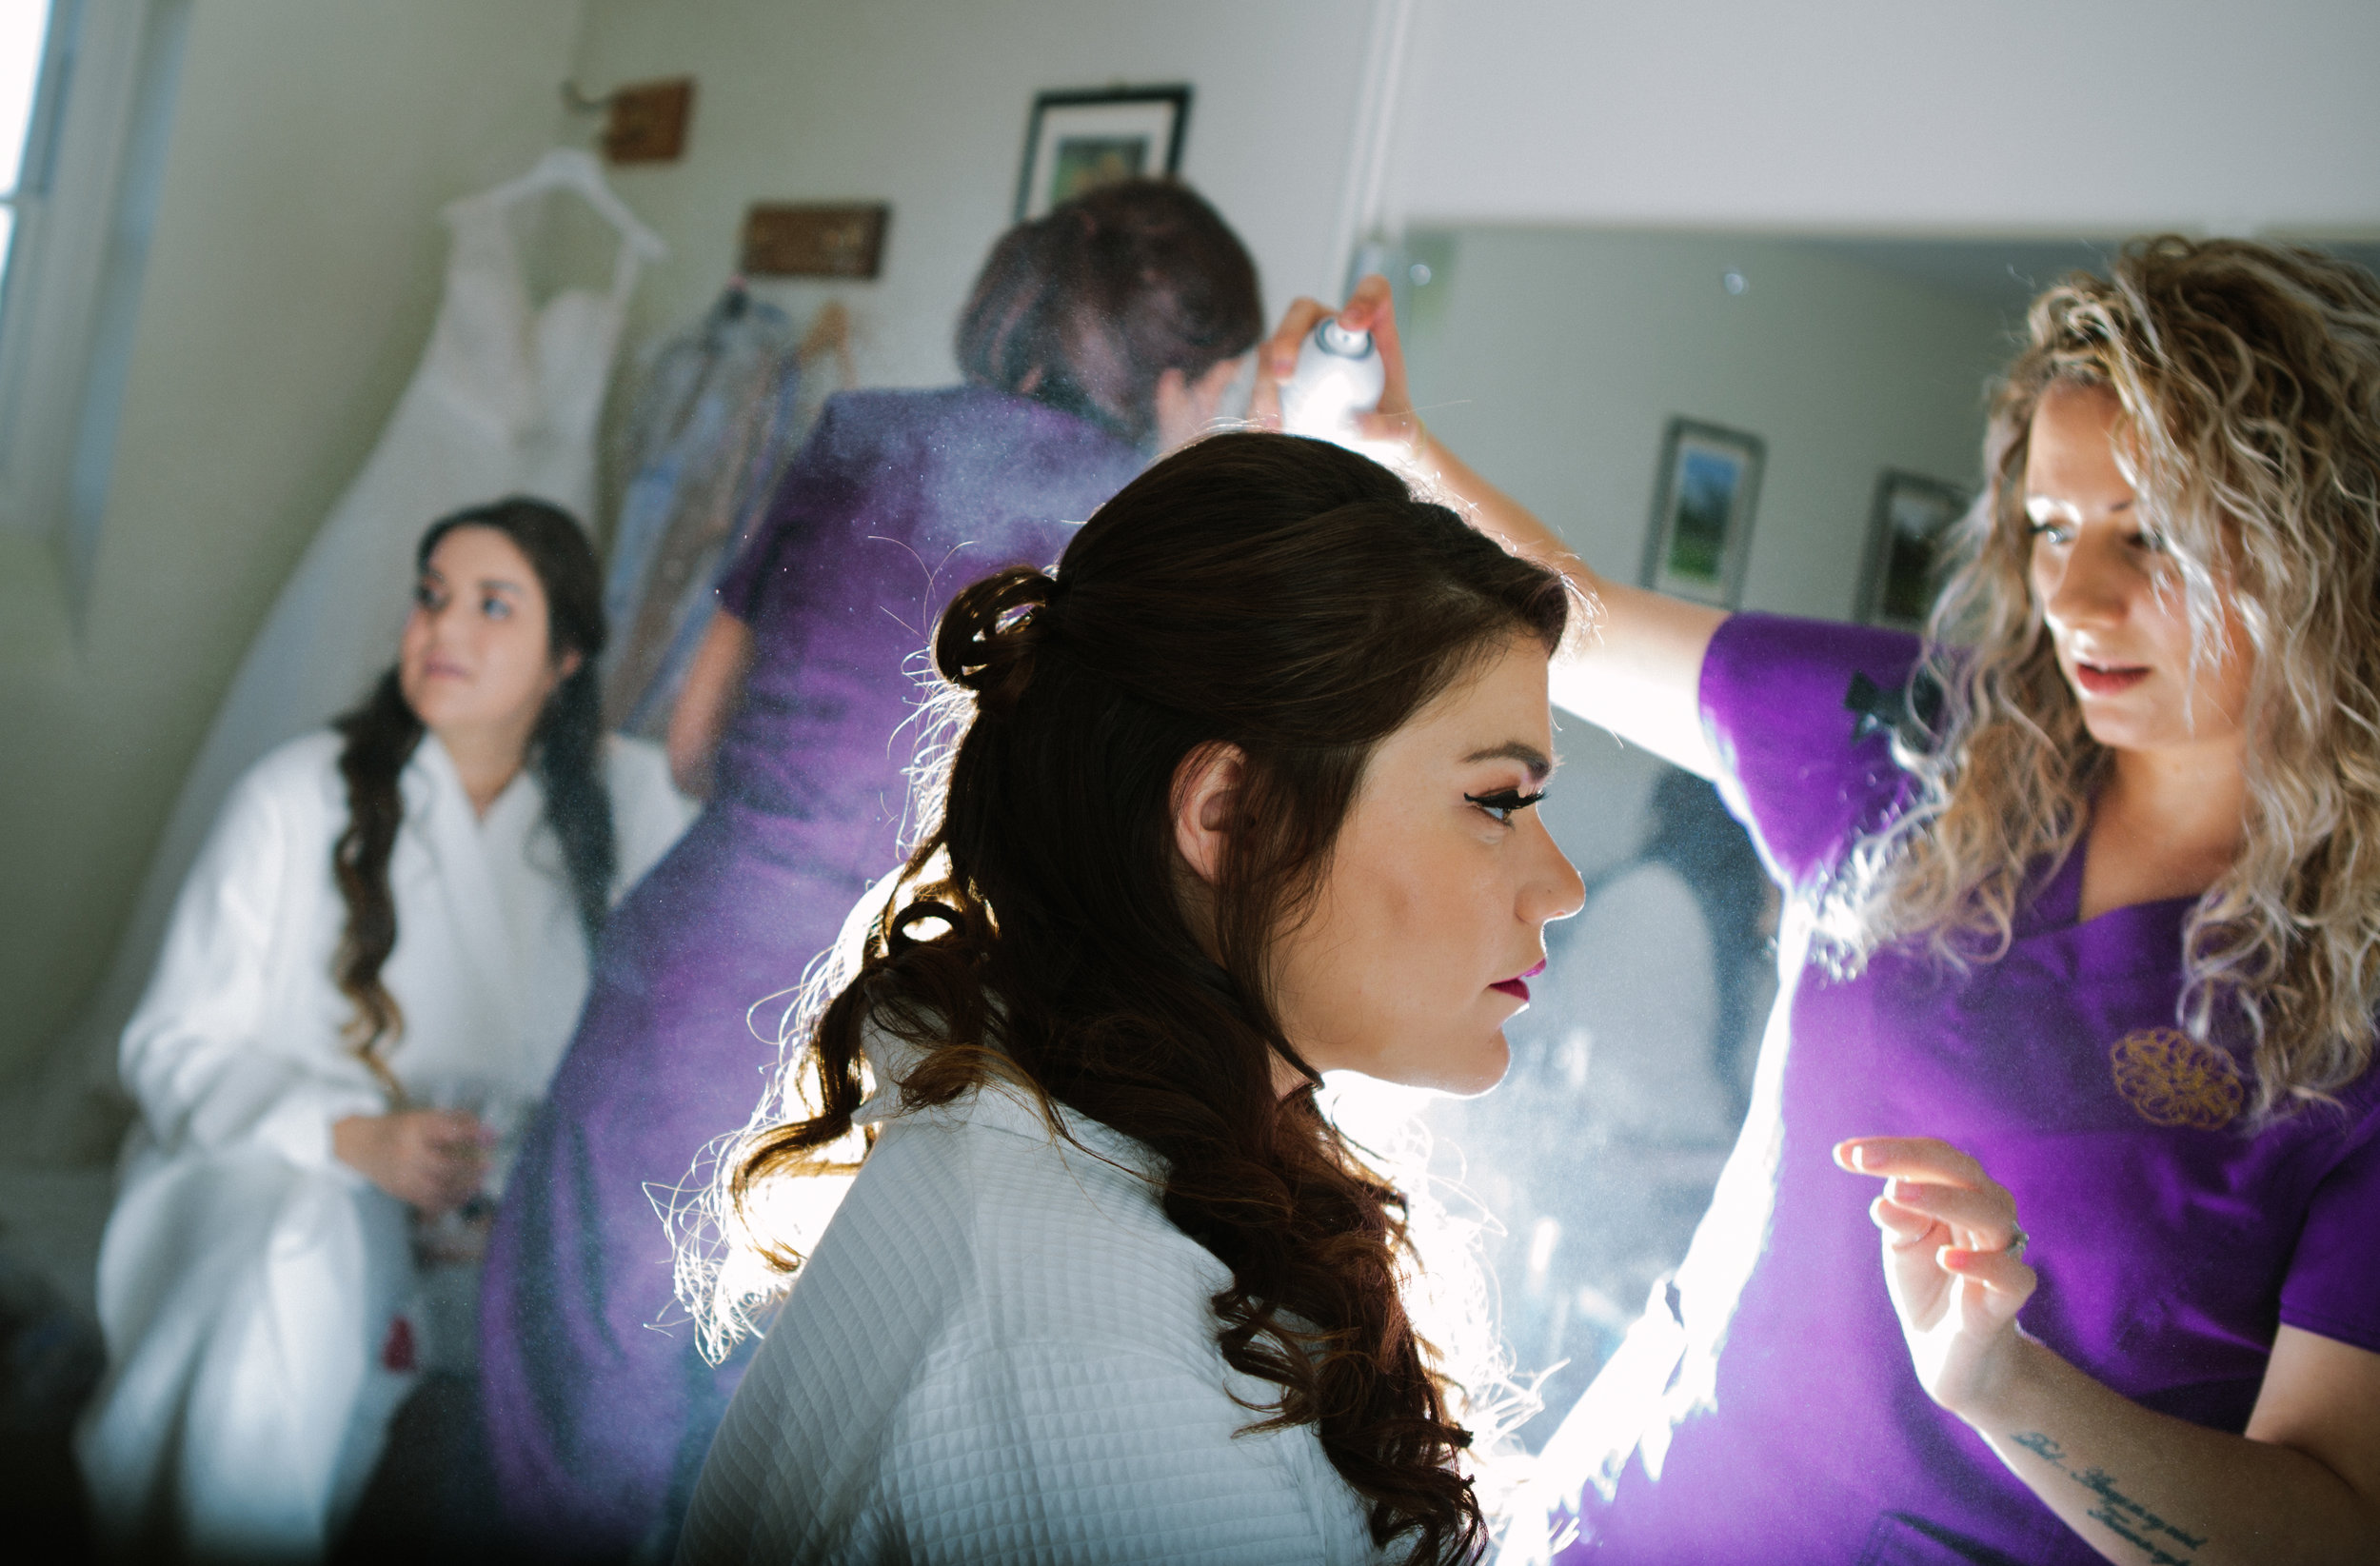 london-bedfordshire-uk-wedding-photography-woburn-scultpture-gallery-bridal-prep-17